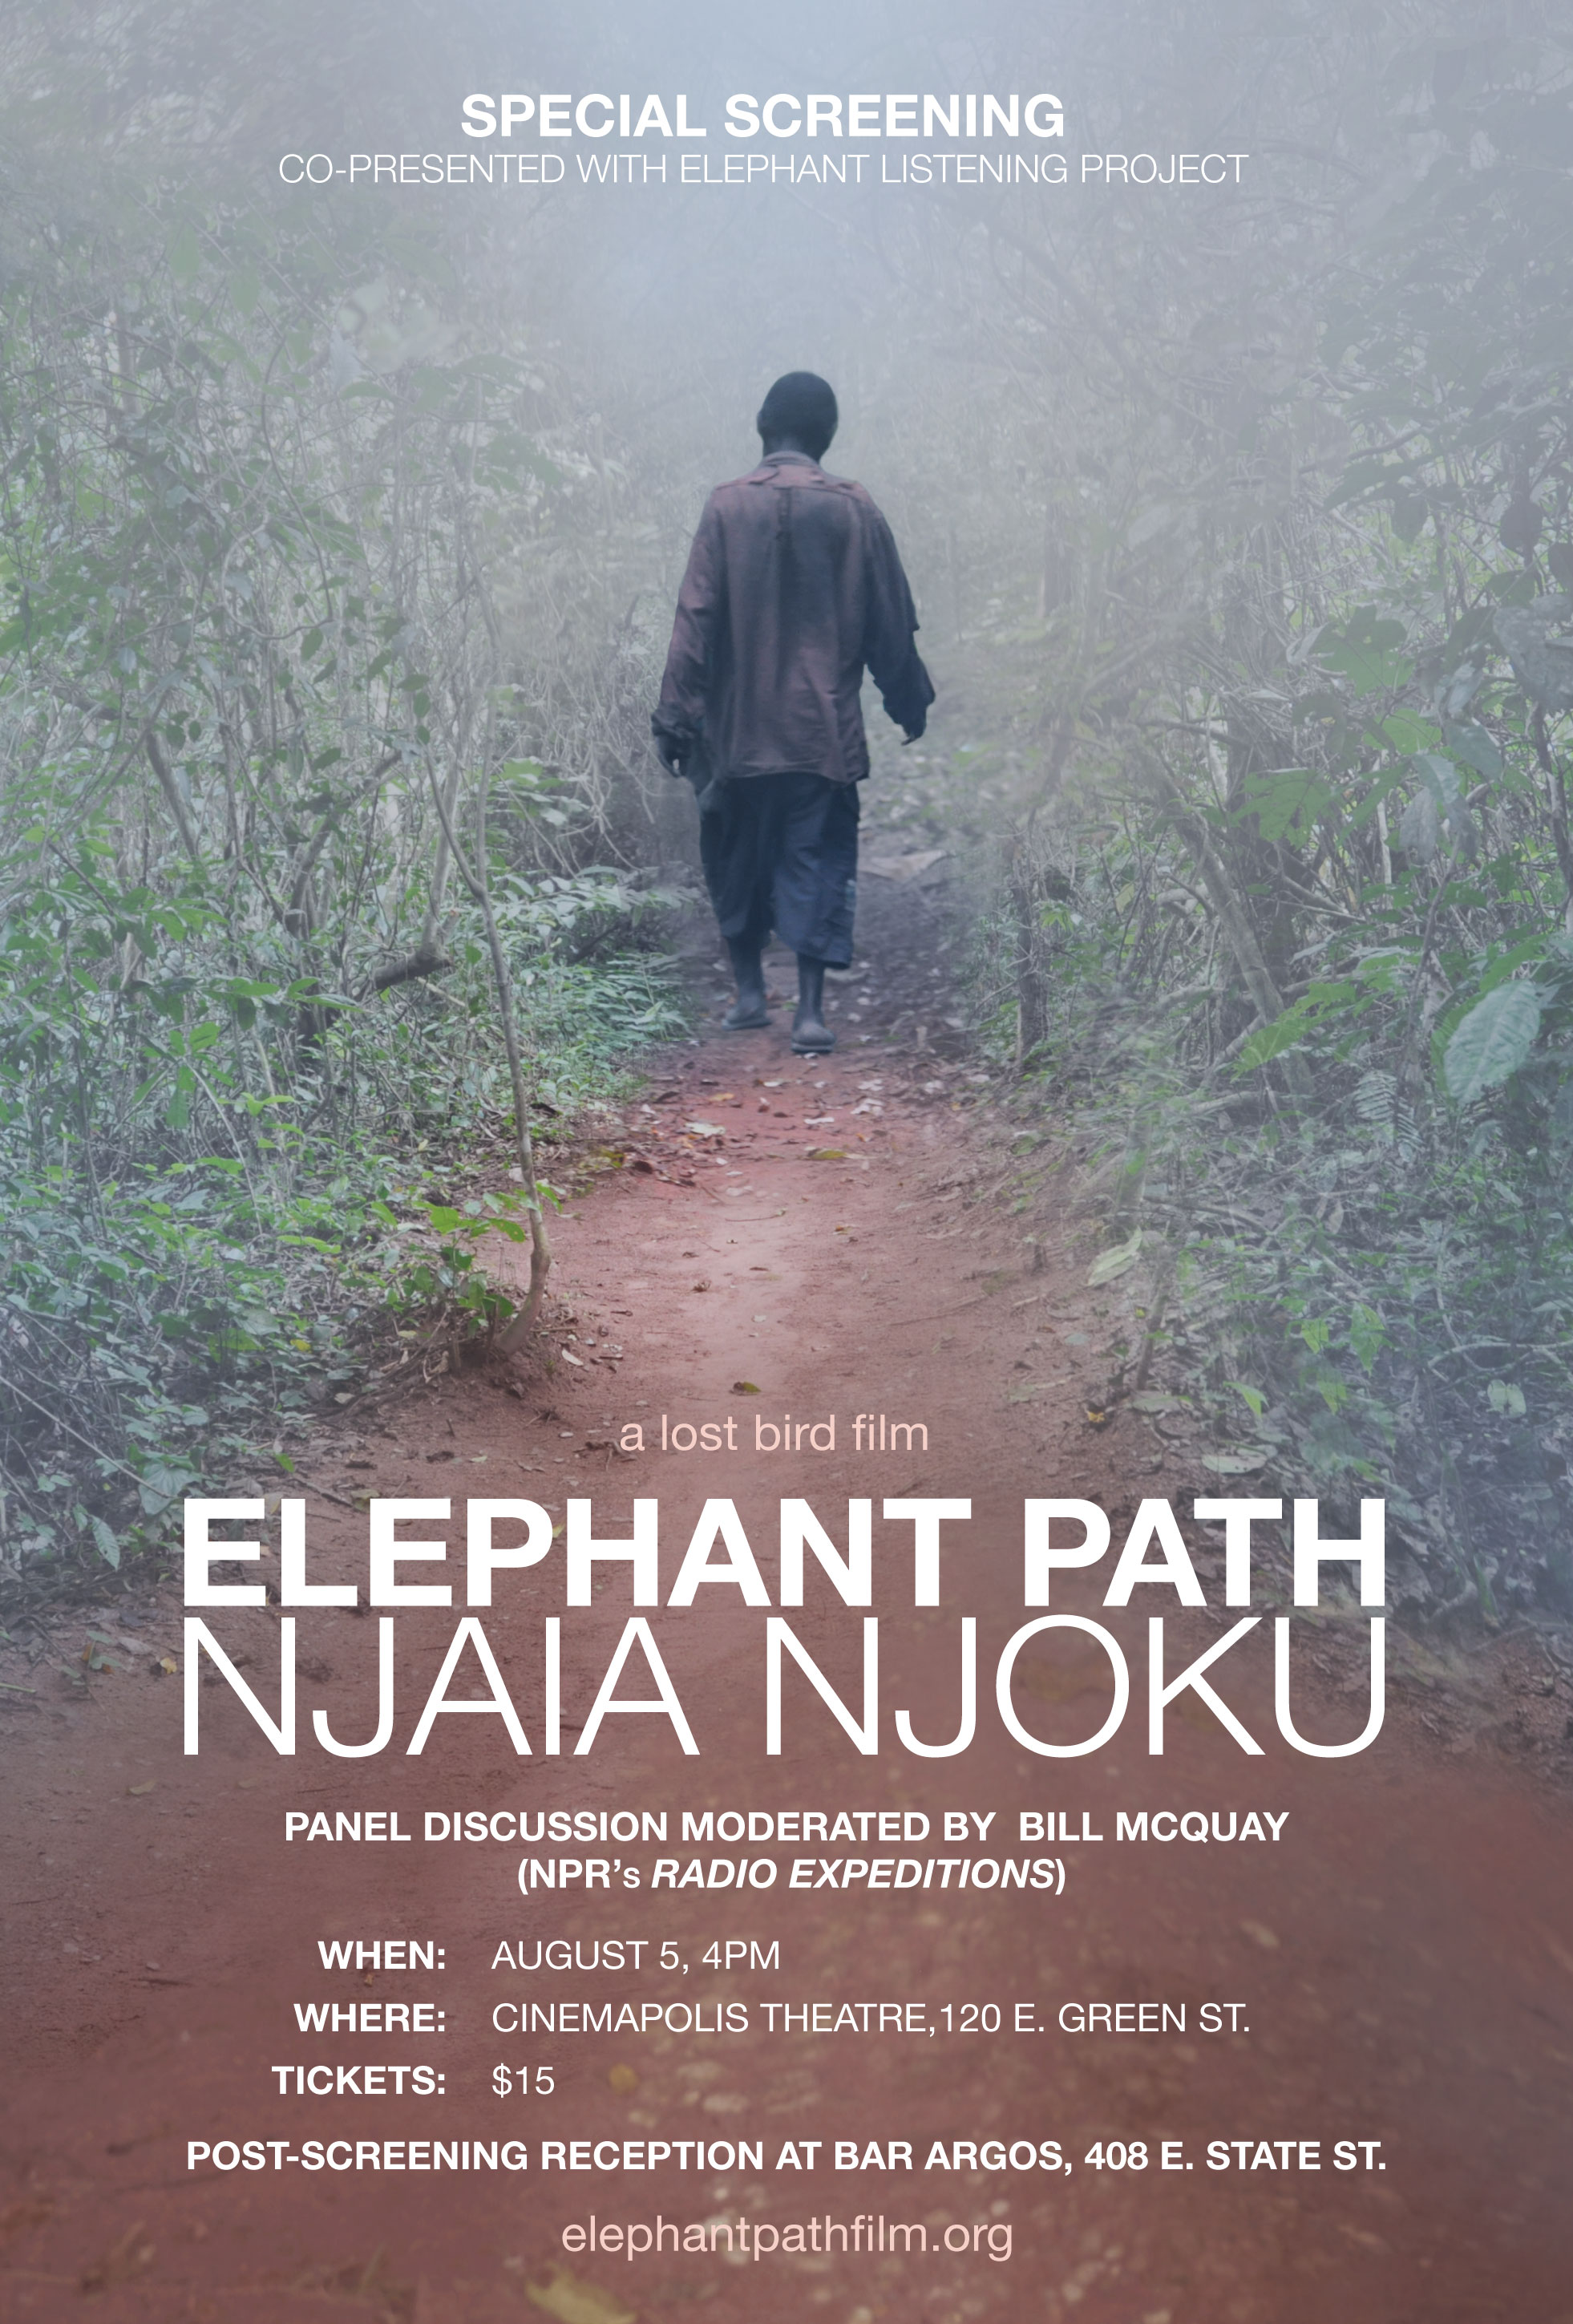 Elephant Path / Njaia Njoku